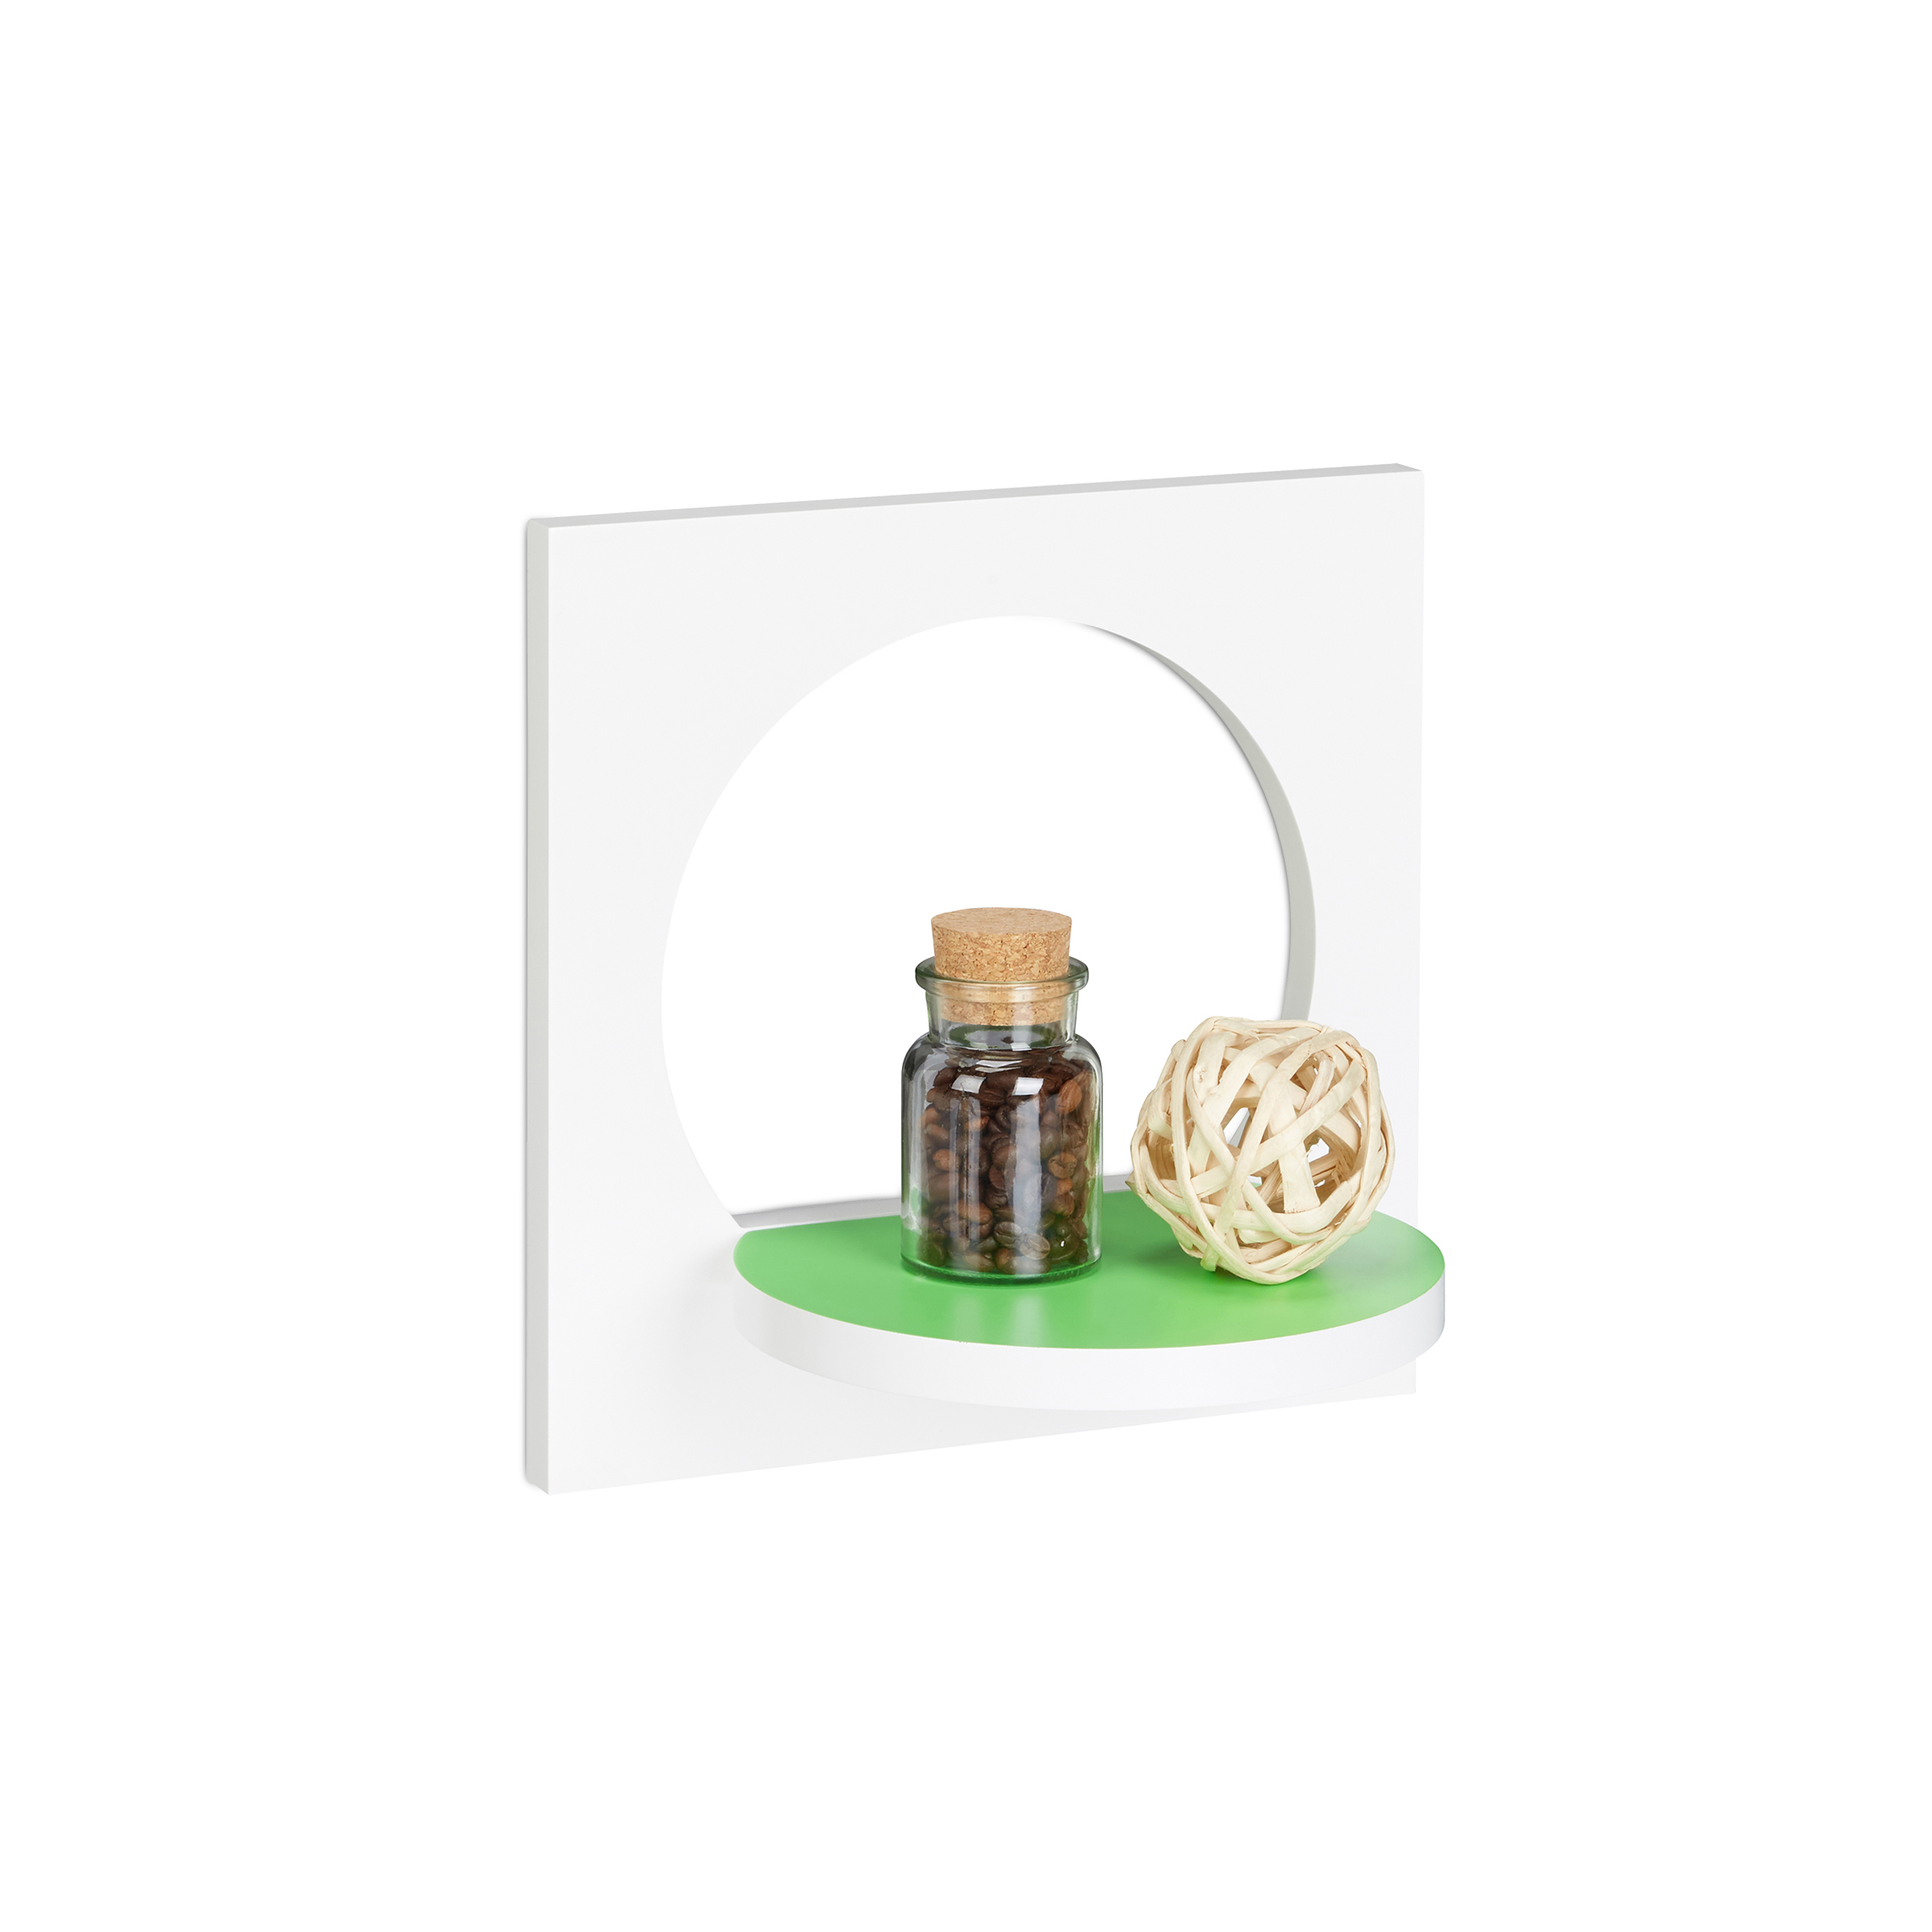 Floating-Flower-Shelf-Original-Wall-Rack-Round-Plant-Stand-Durable